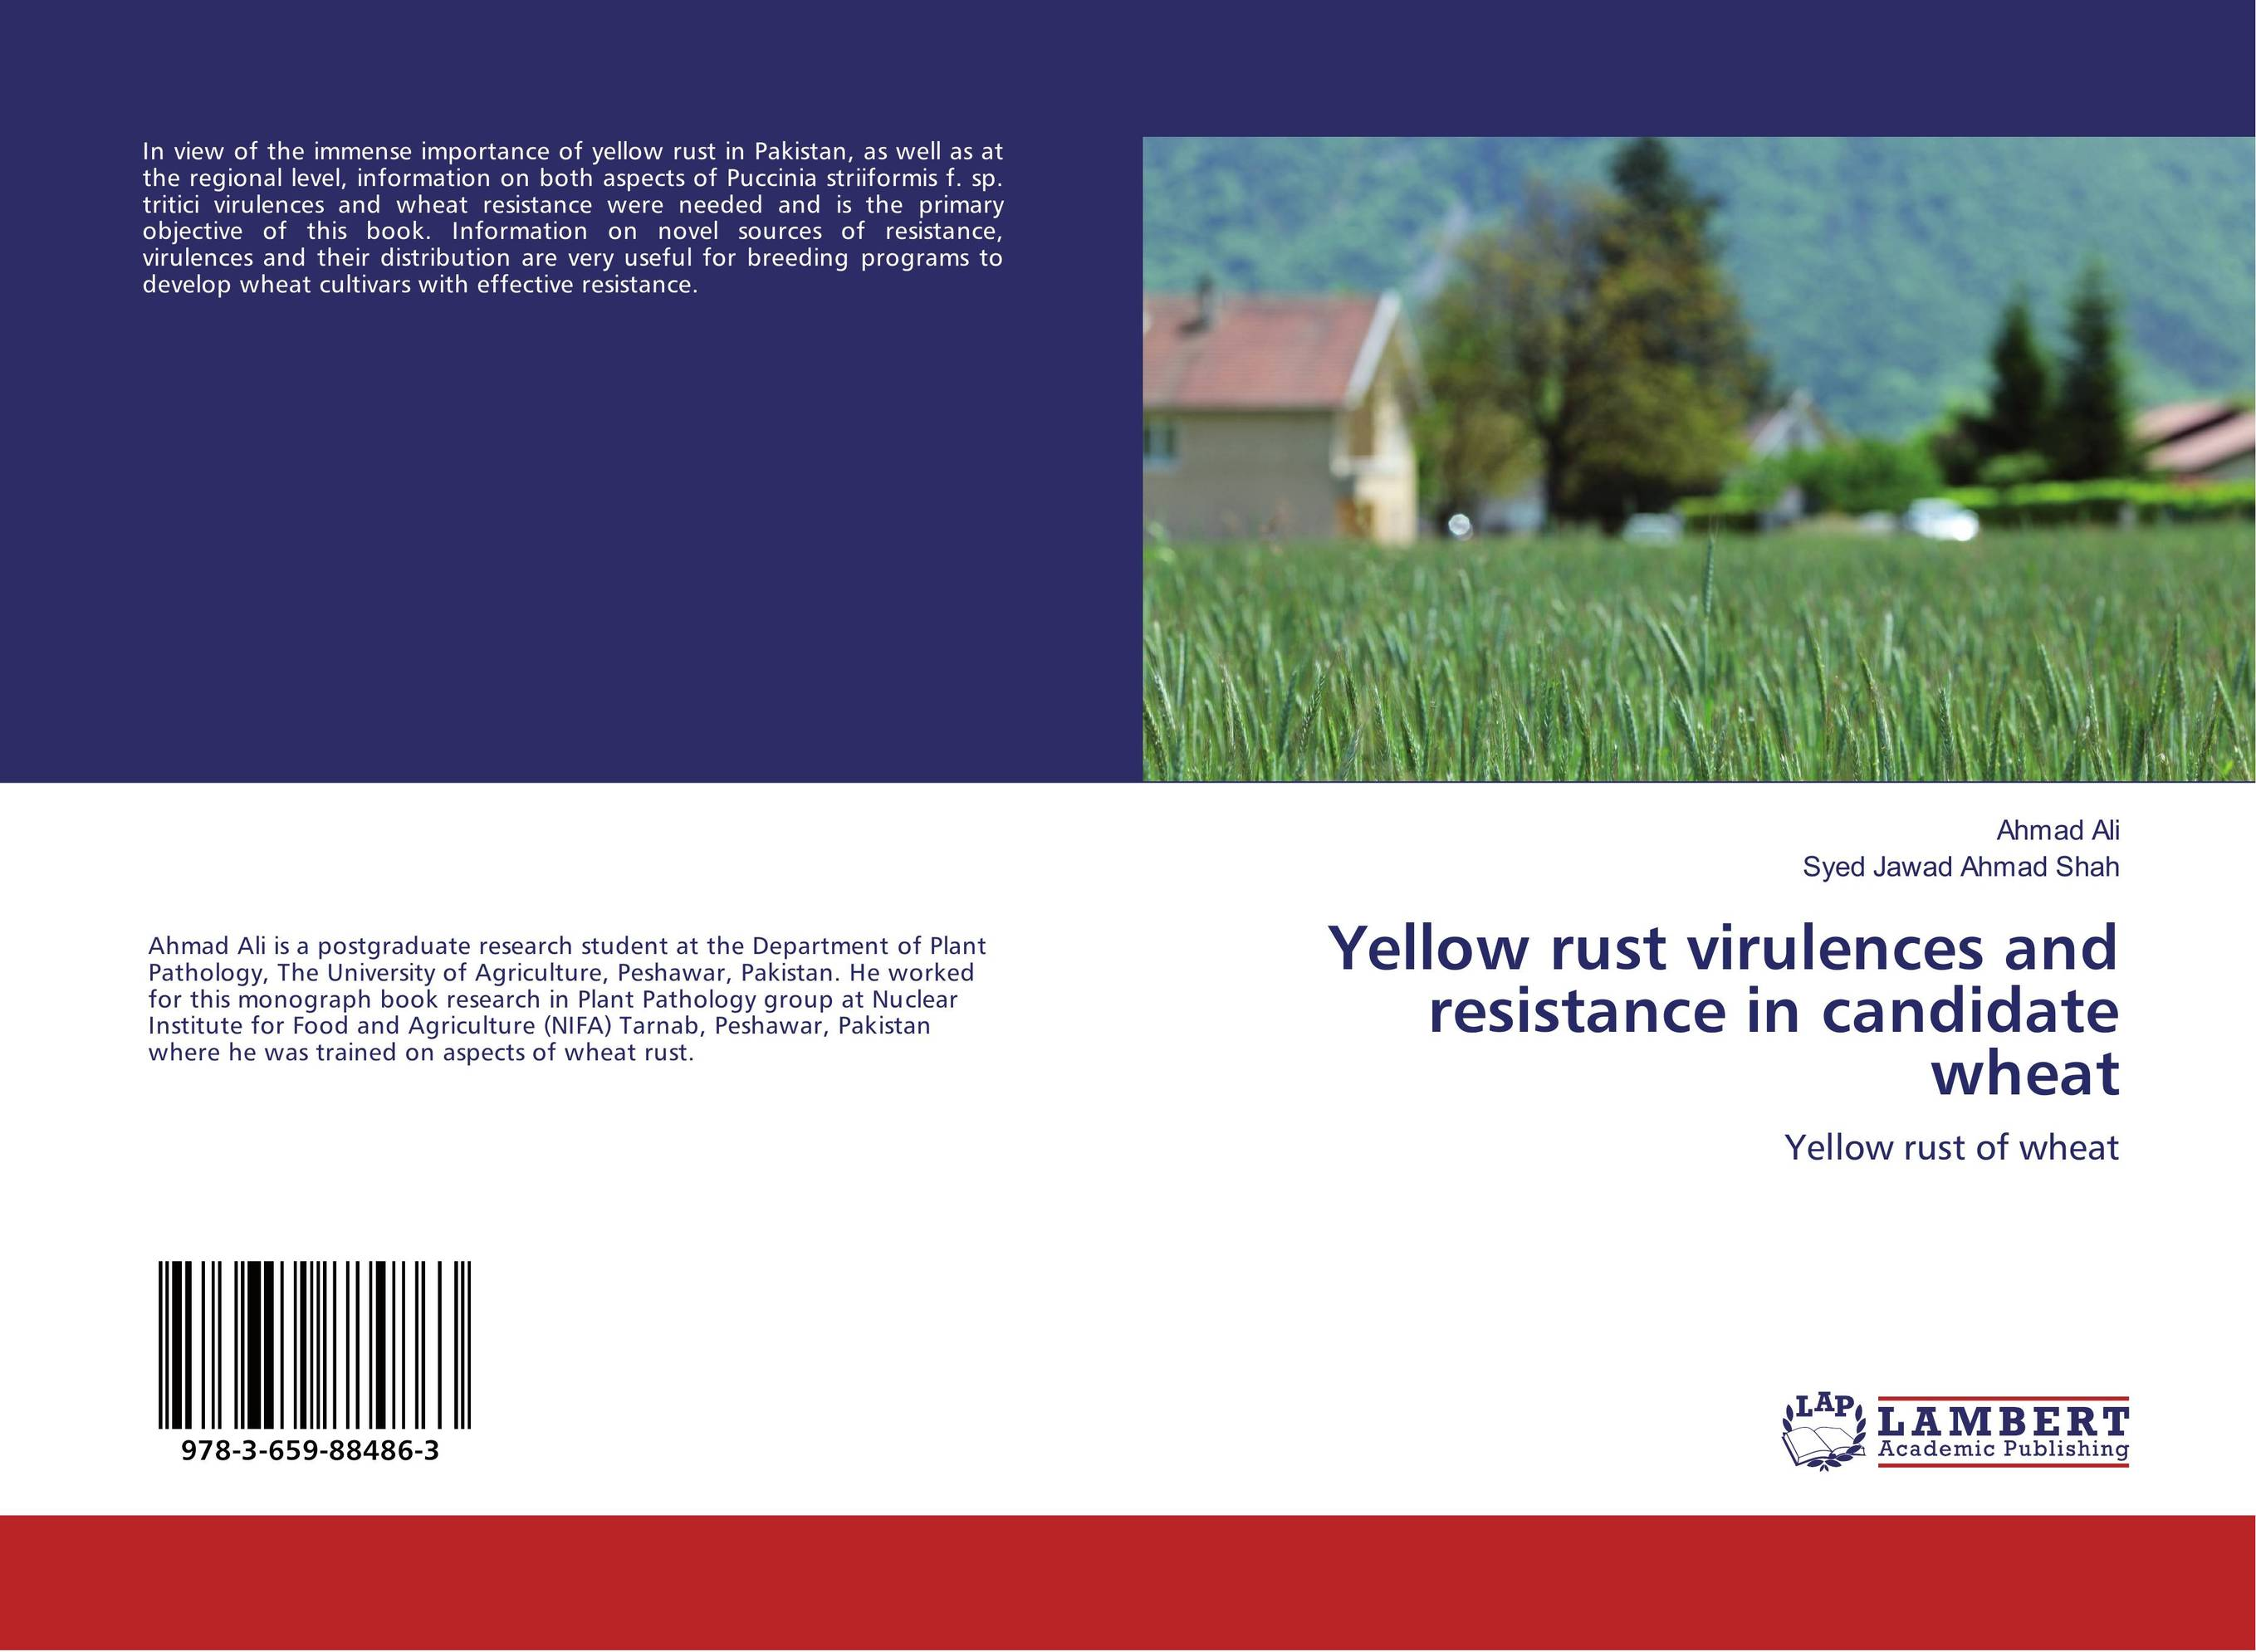 Yellow rust virulences and resistance in candidate wheat genetic variation for stem rust resistance in spring wheat